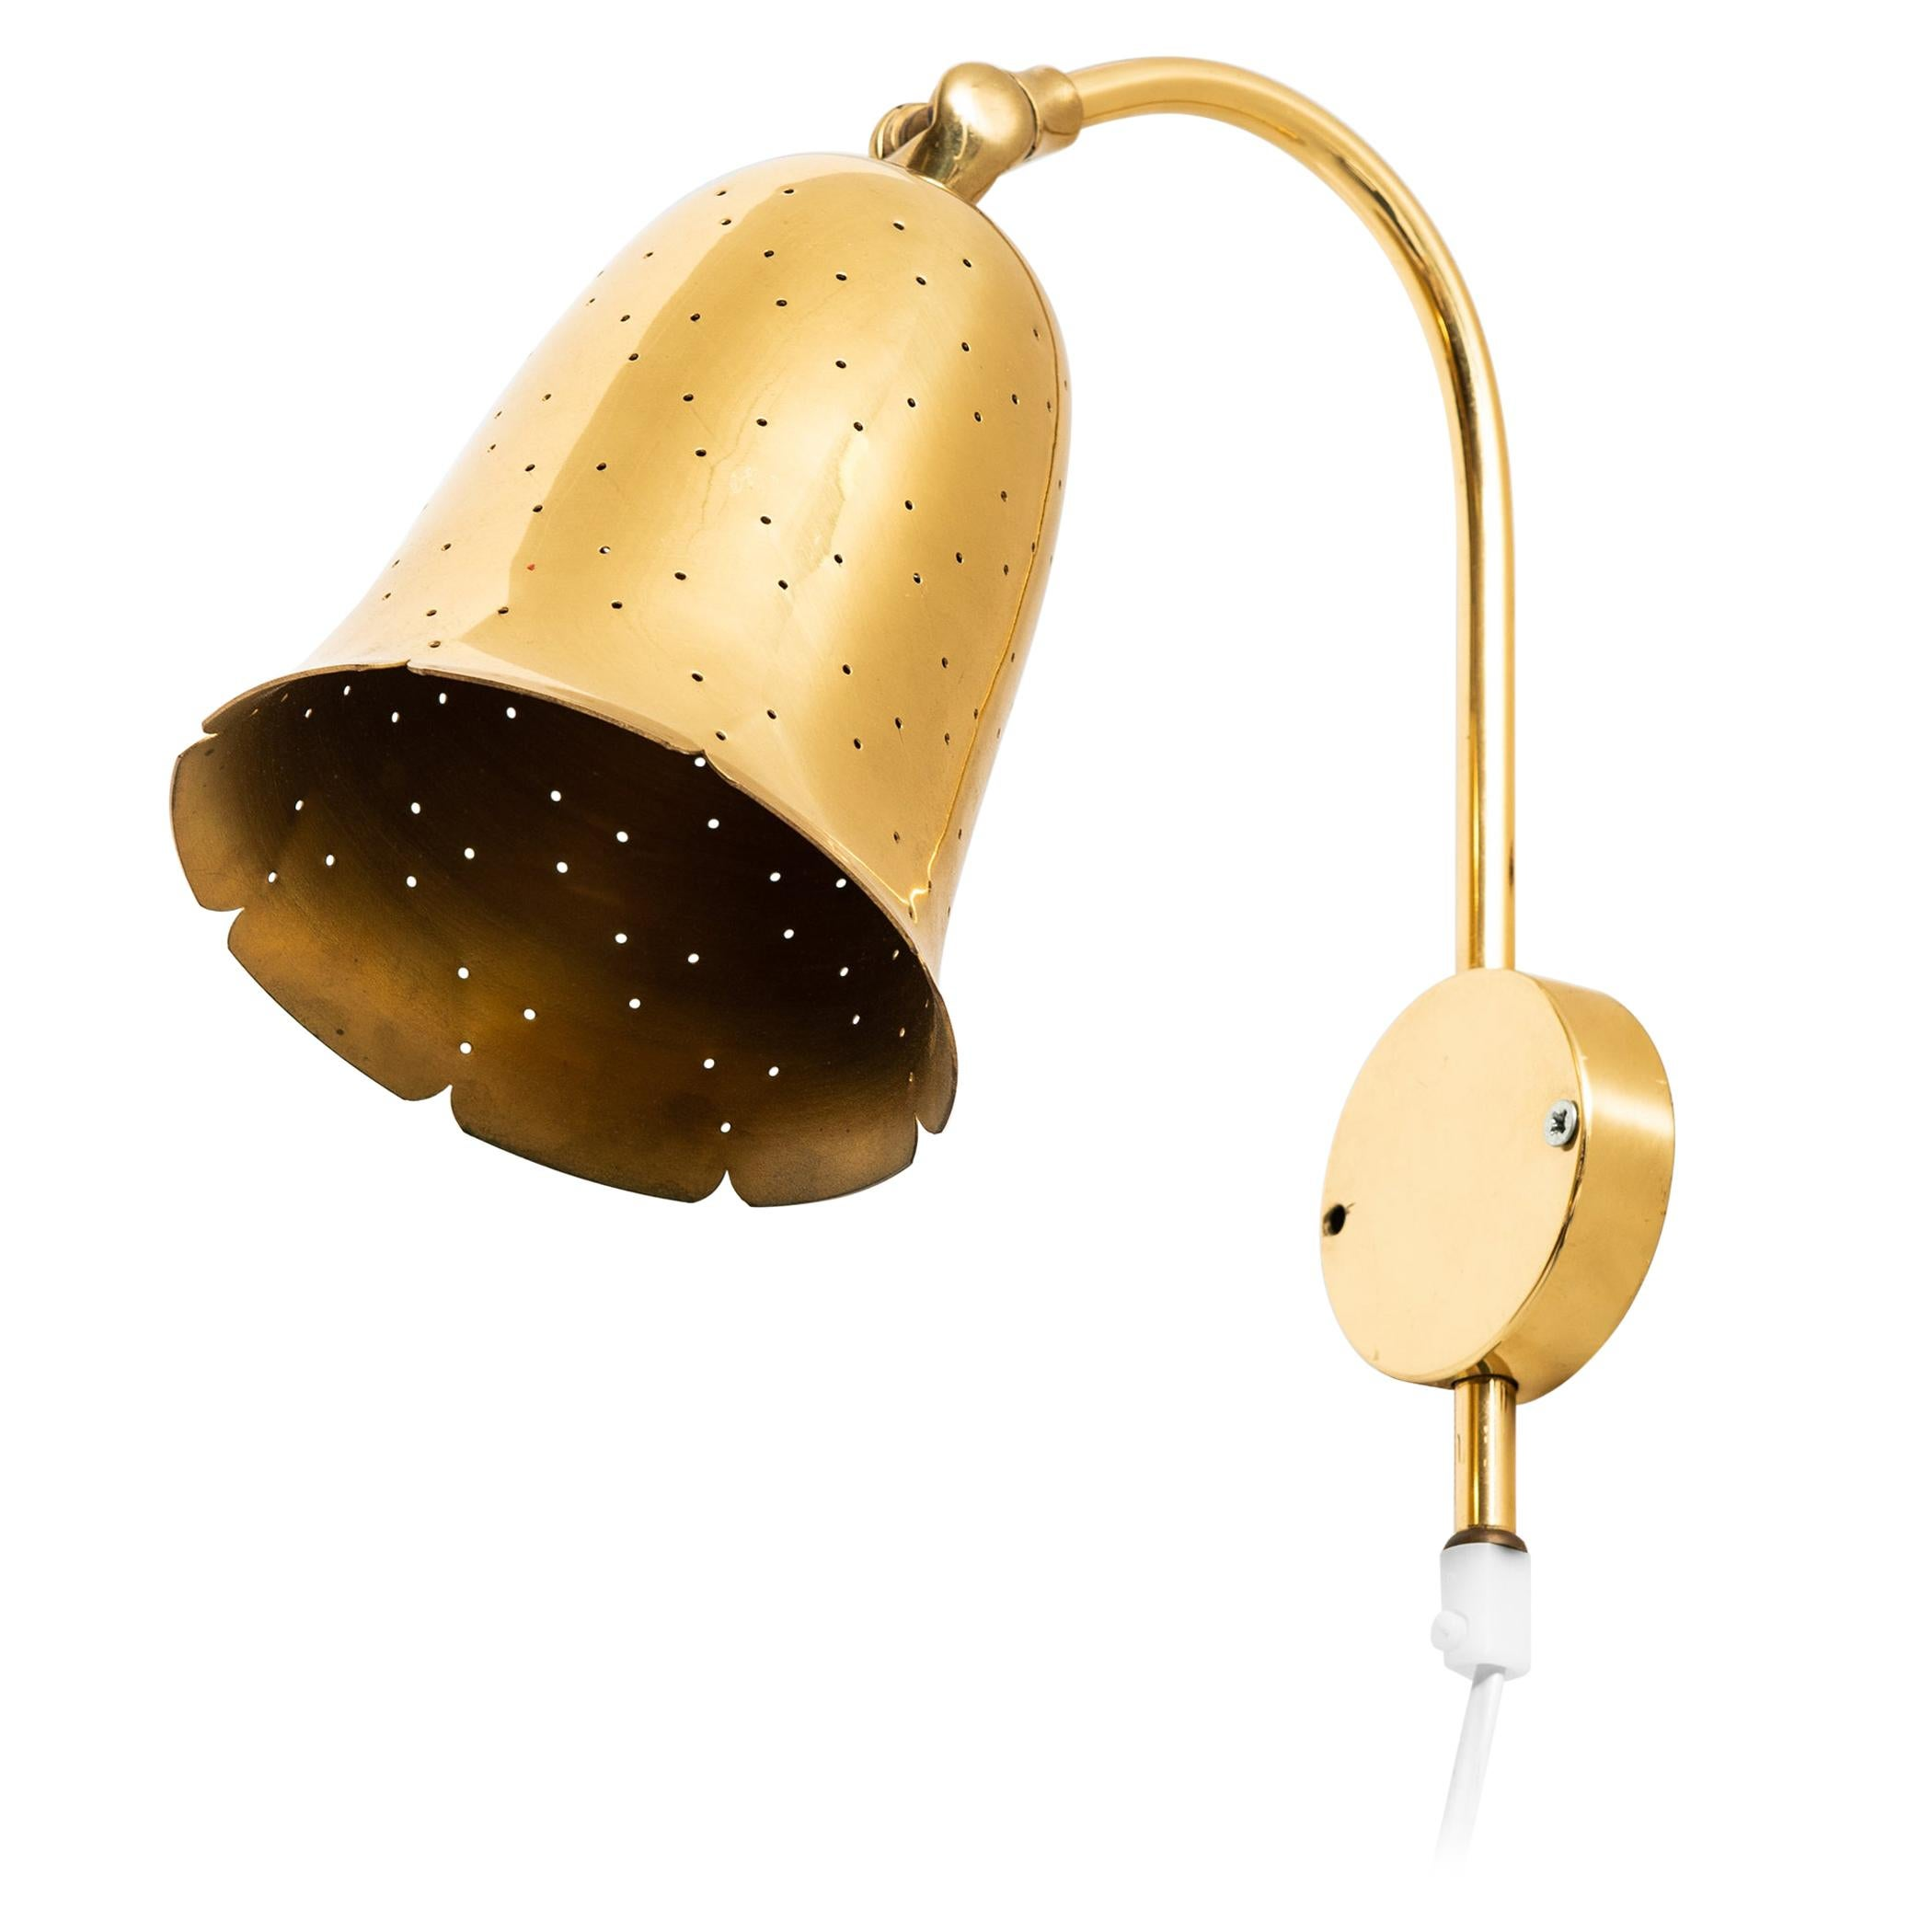 Pair of Wall Lamps in Brass Produced by Boréns in Sweden